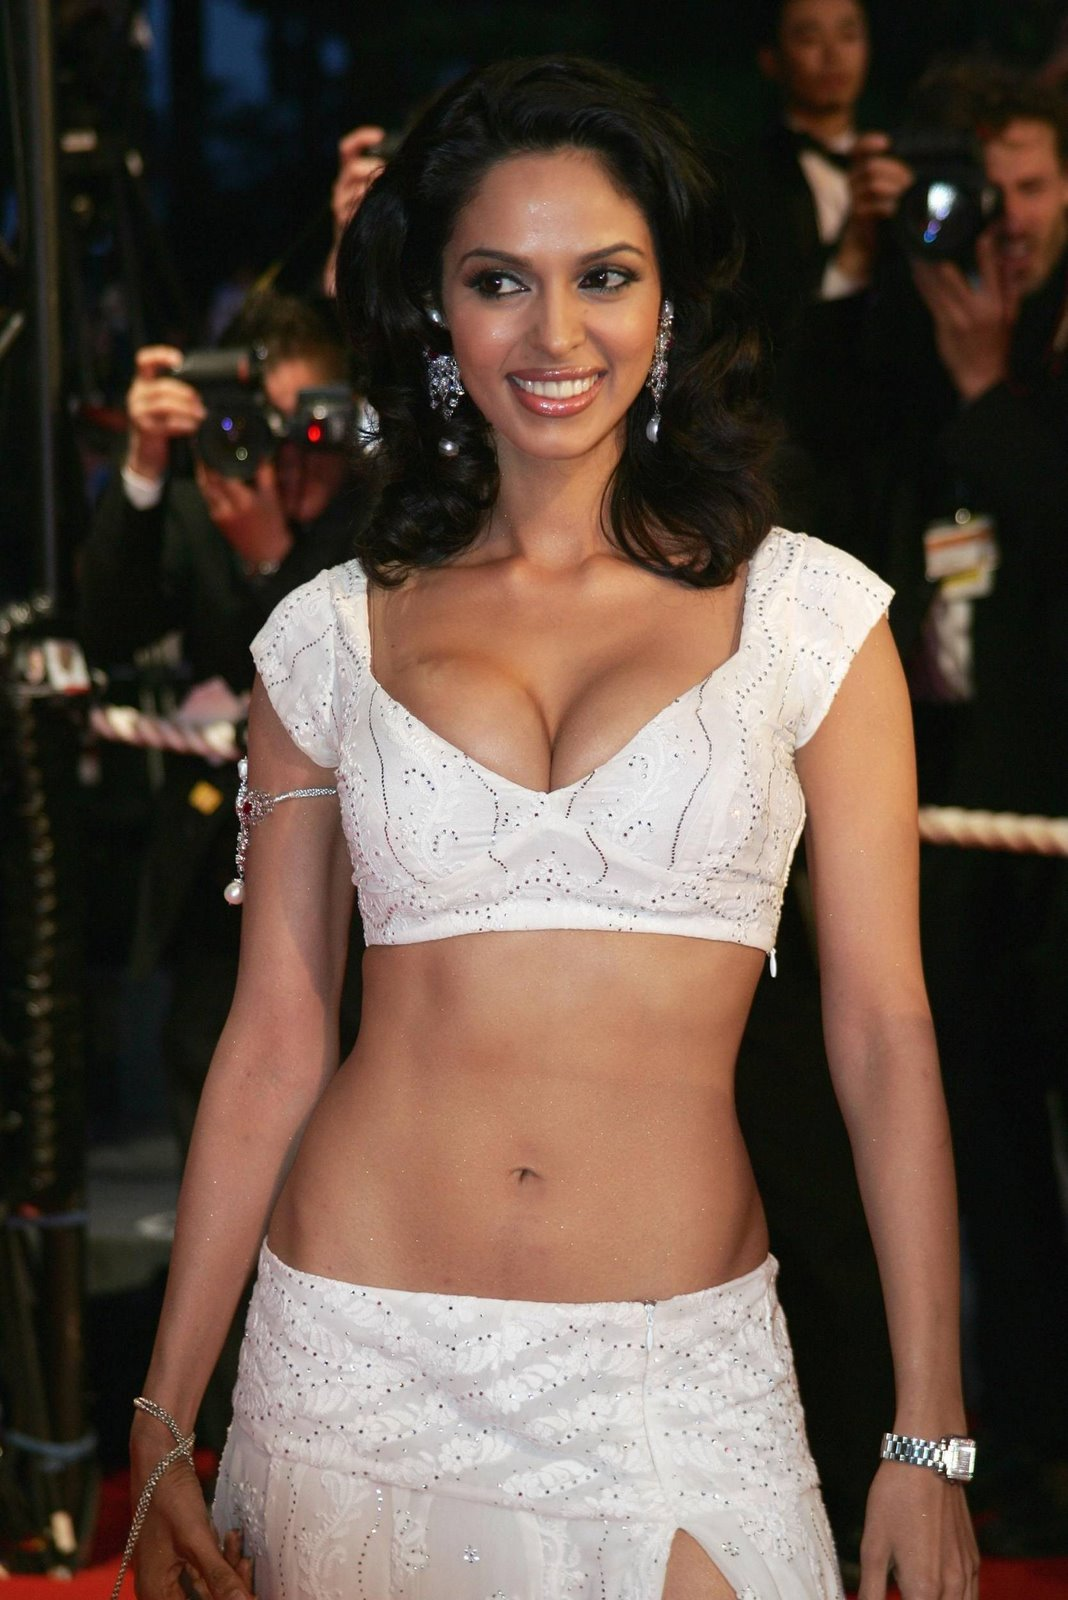 cool gadgets: mallika sherawat hot picture 05